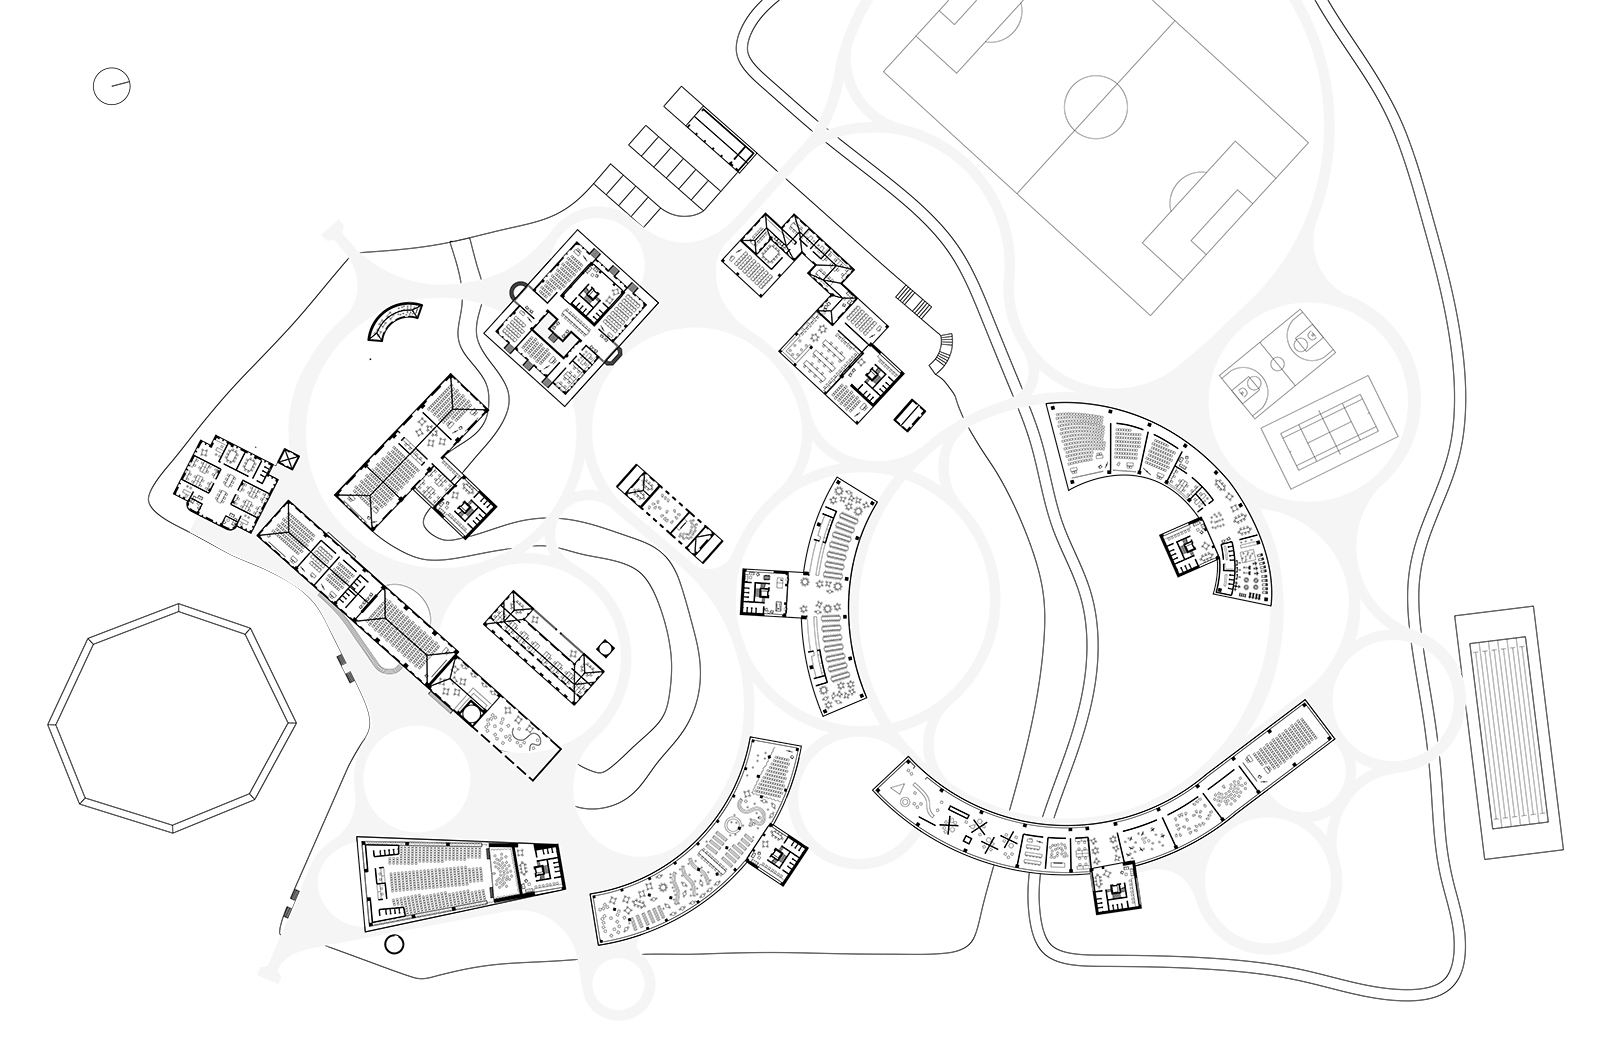 Drawing showing the fragmented and isolated relationships of the UI buildings to each other requiring island wandering